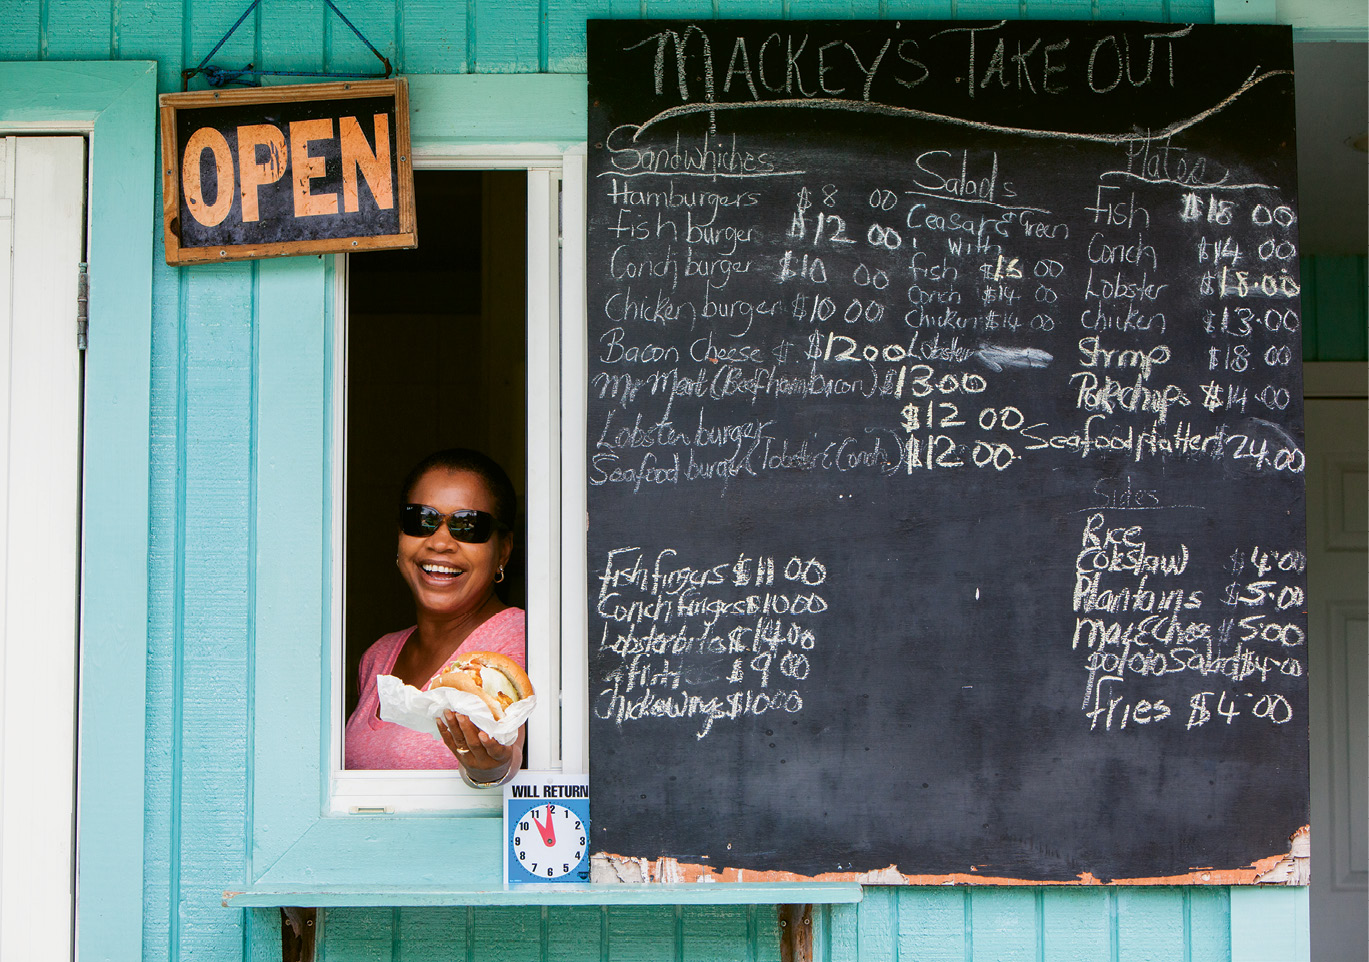 Friendly window service at Mackey's Takeout, a favorite lunch stop for fresh seafood.